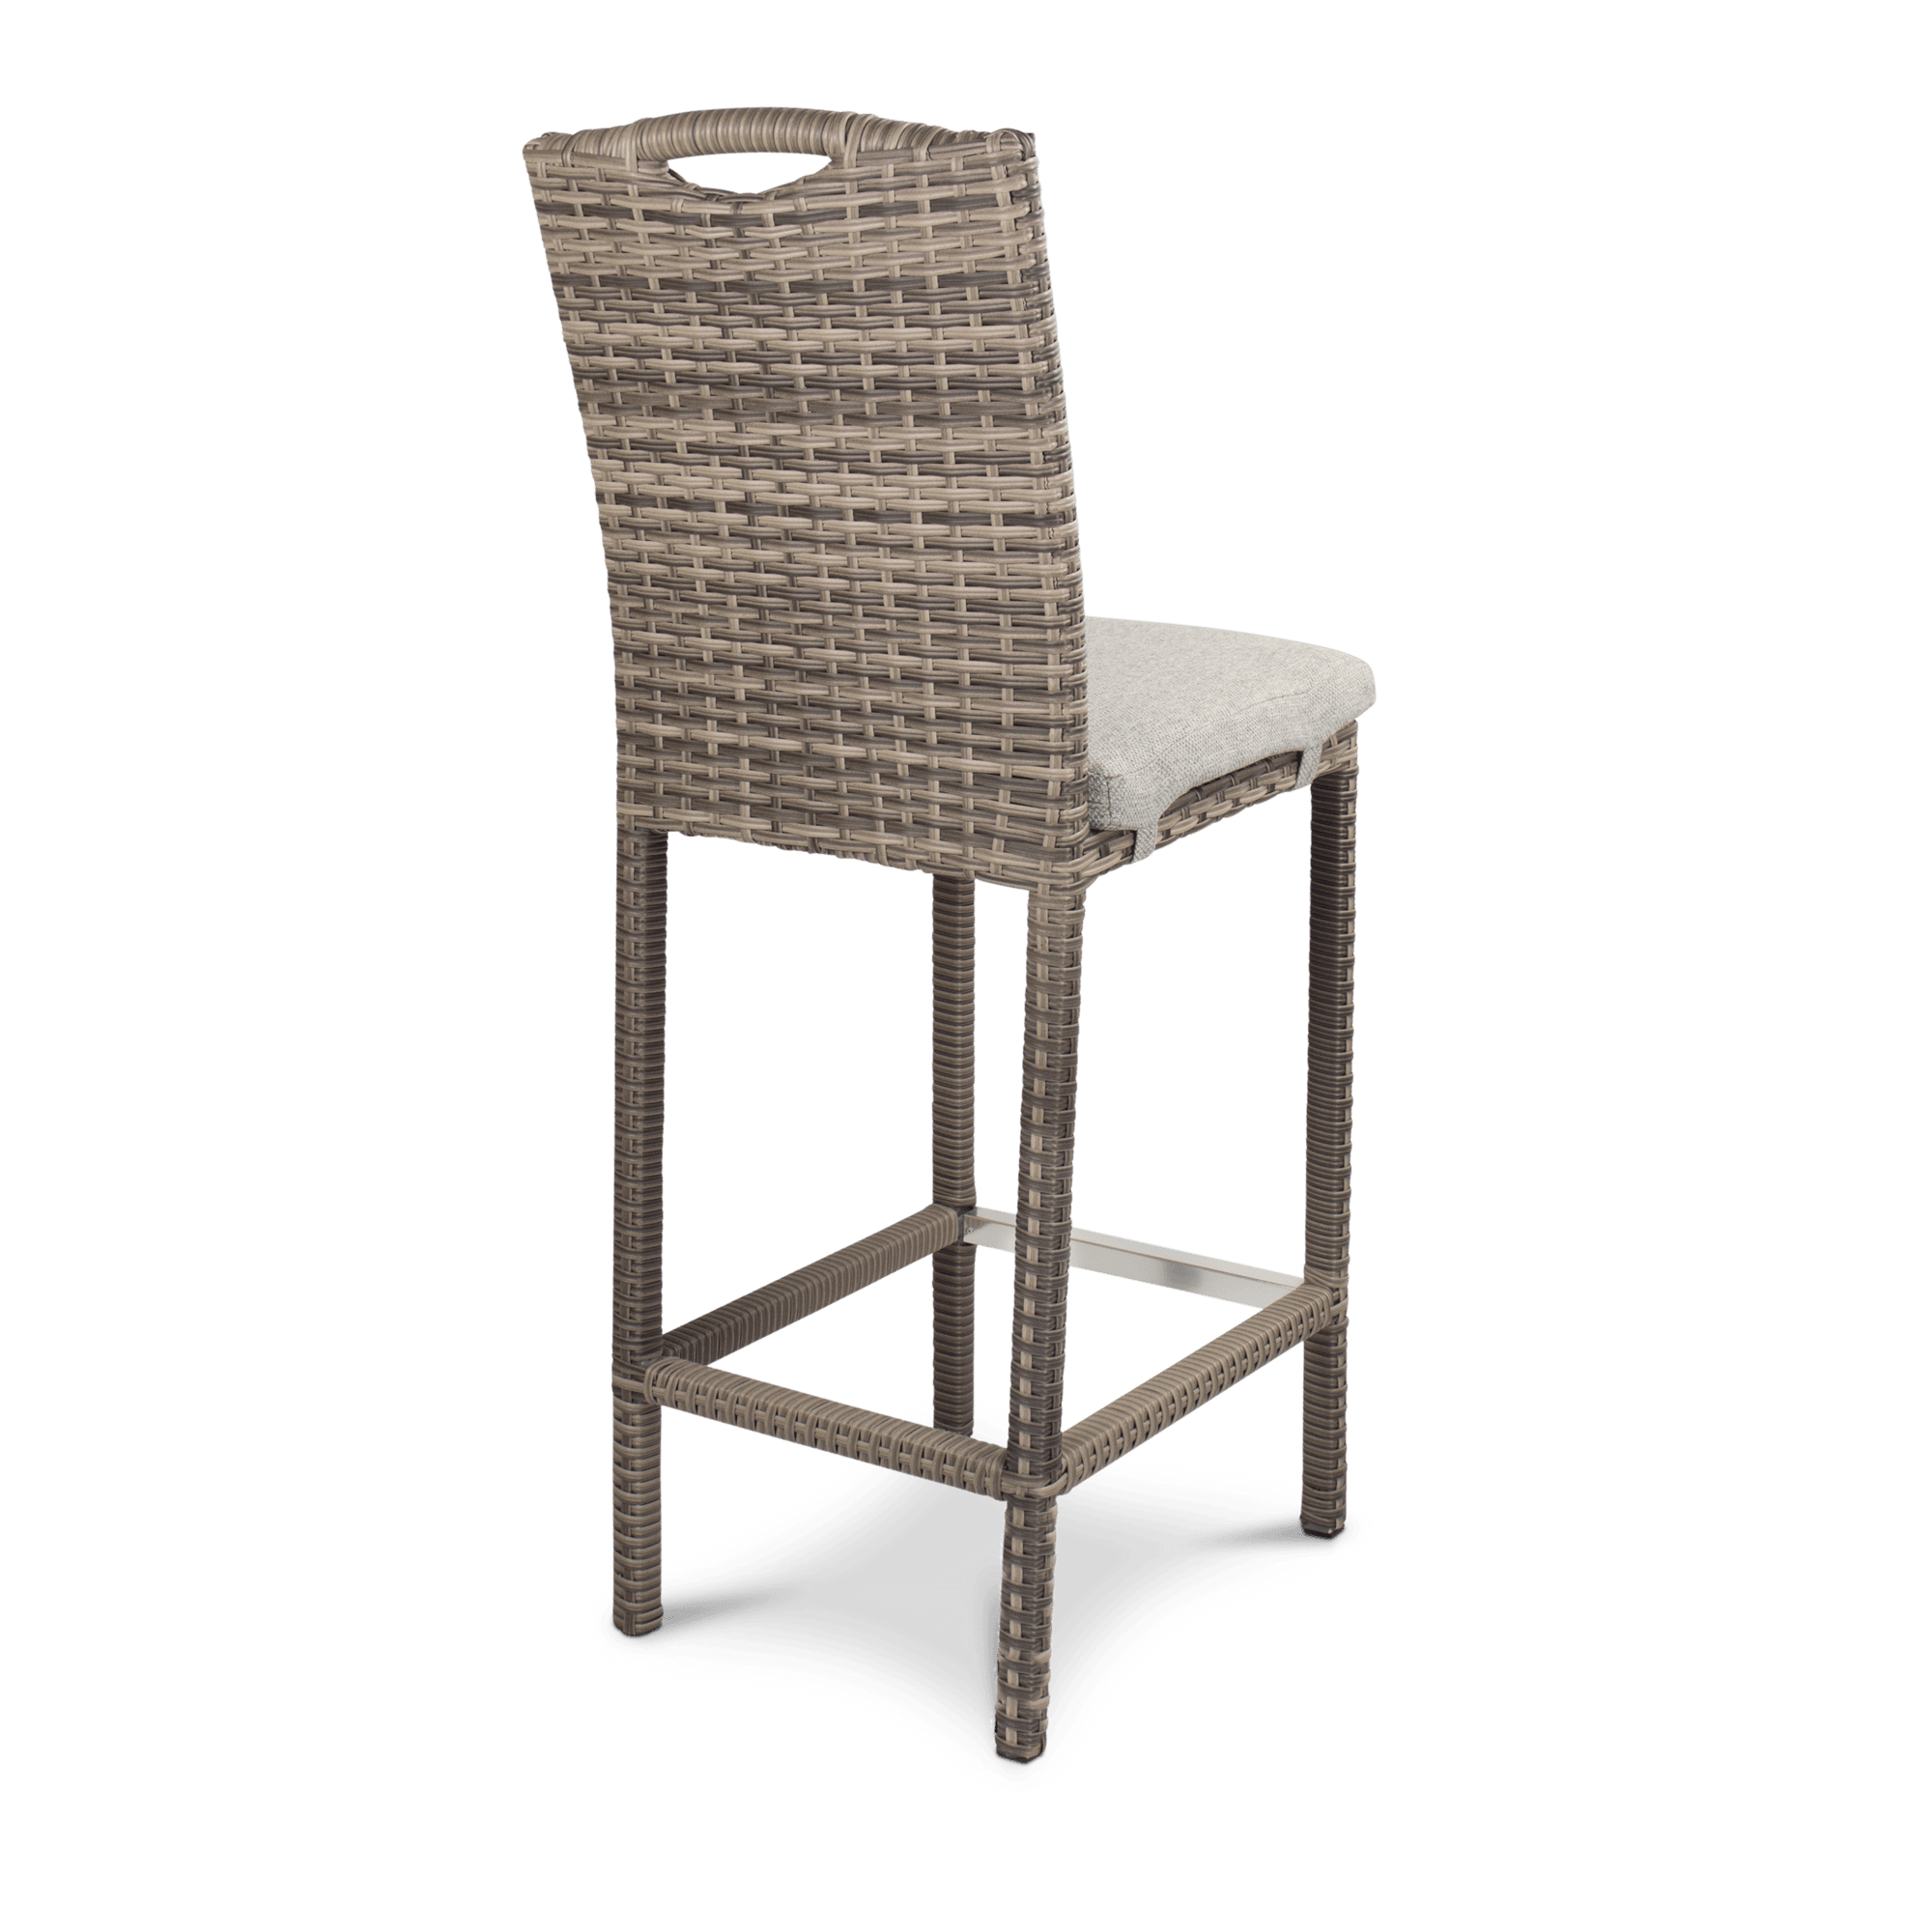 Havana Bar Stool in Mocha Weave with Latte Spun Poly Cushions